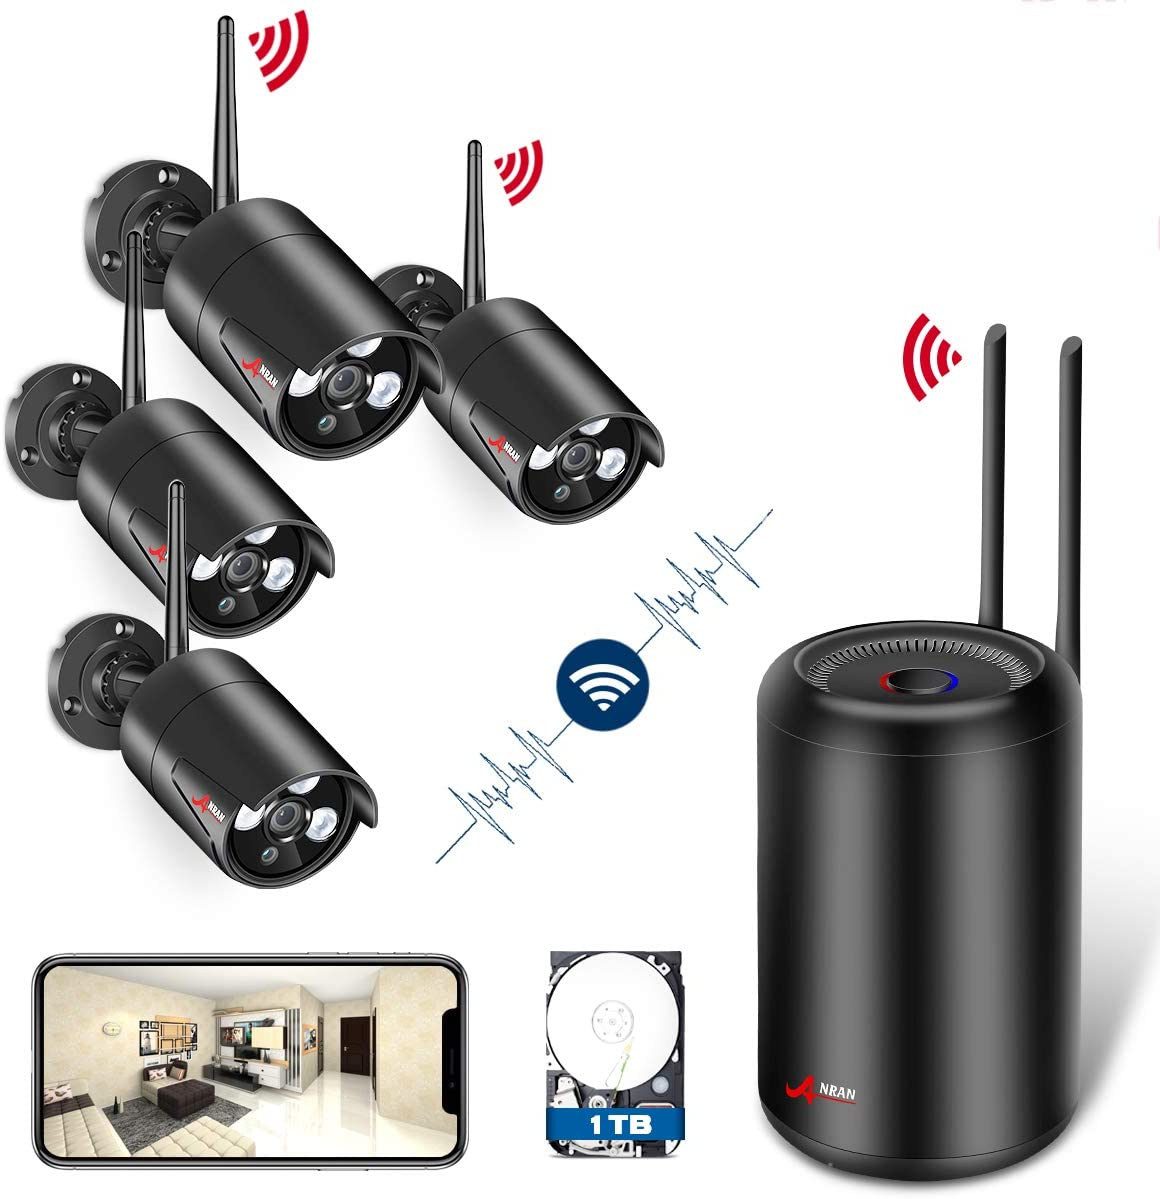 Wireless Security Camera System HD 1080p Video Security System with 4pcs WiFi Security Cameras,Night Vision Indoor Outdoor Home Surveillance System ANRAN WiFi NVR Kits with 1TB HDD